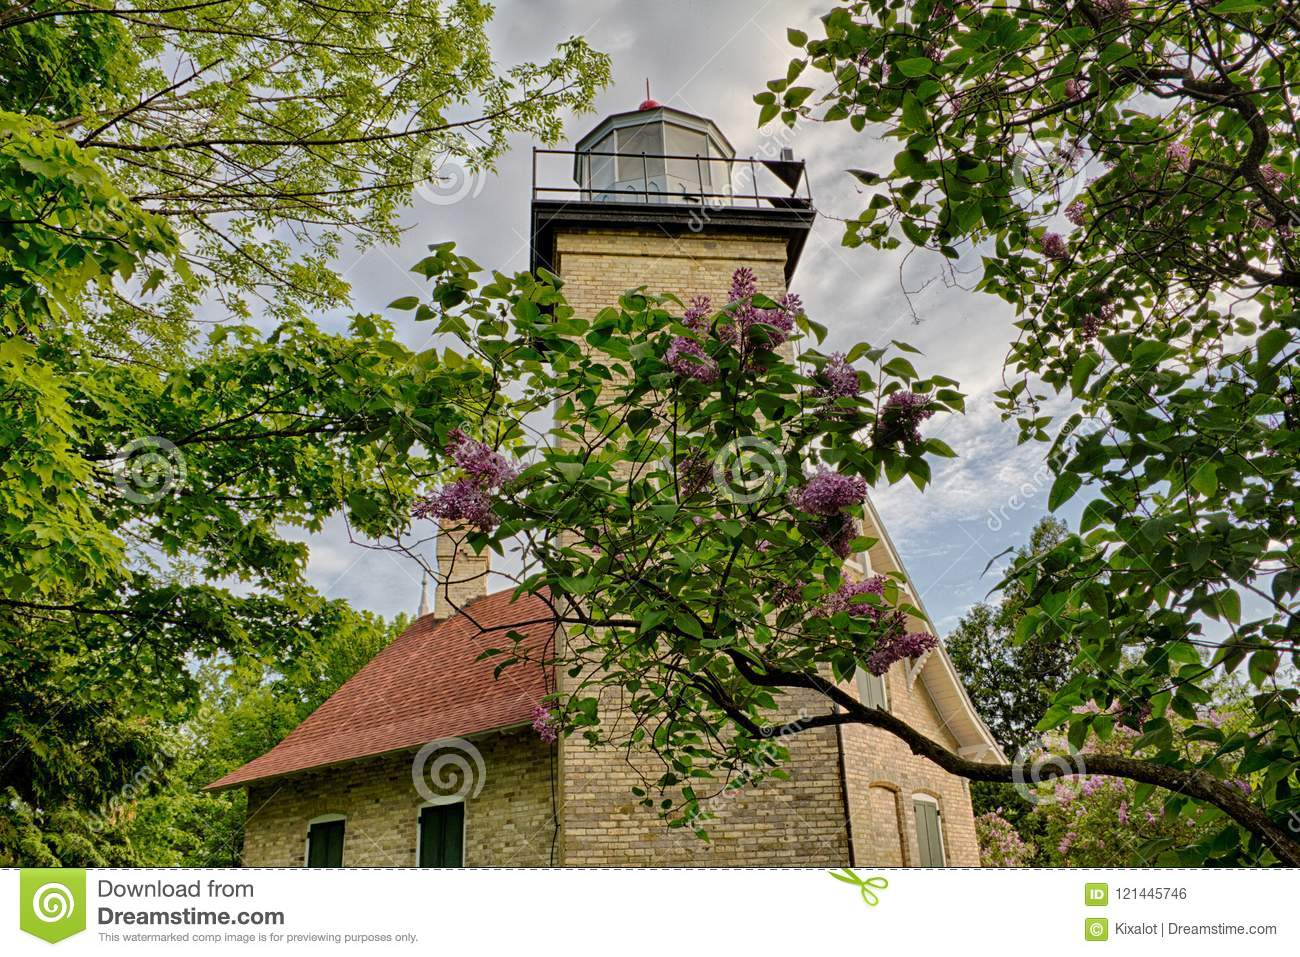 Eagle Bluff Lighthouse In Door County Wisconsin Stock Photo Image